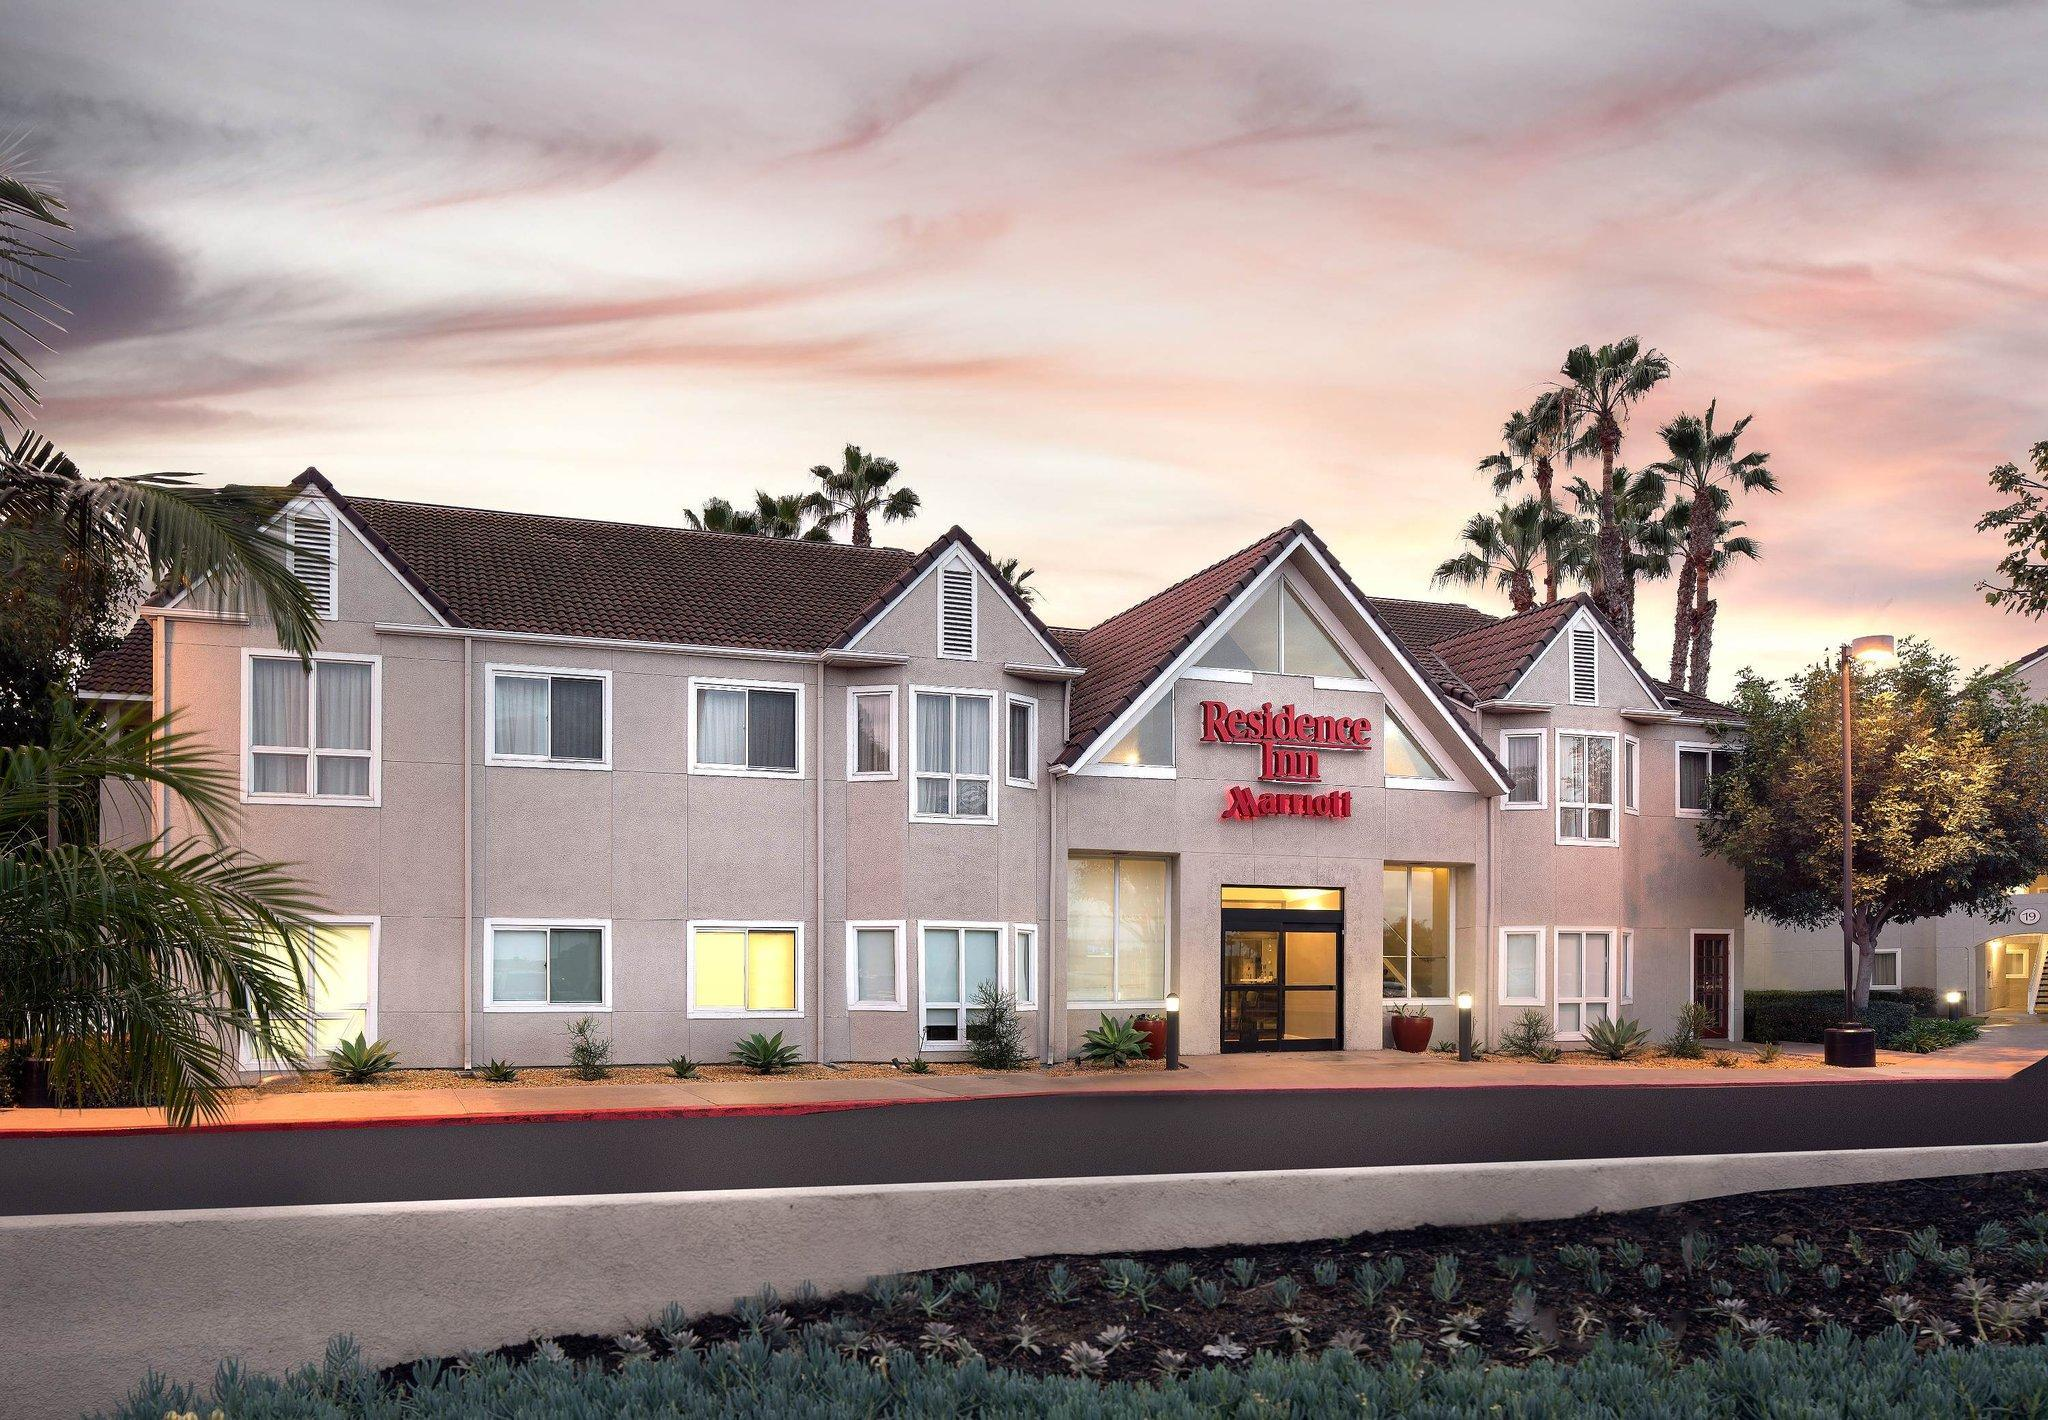 More About Residence Inn Huntington Beach Fountain Valley